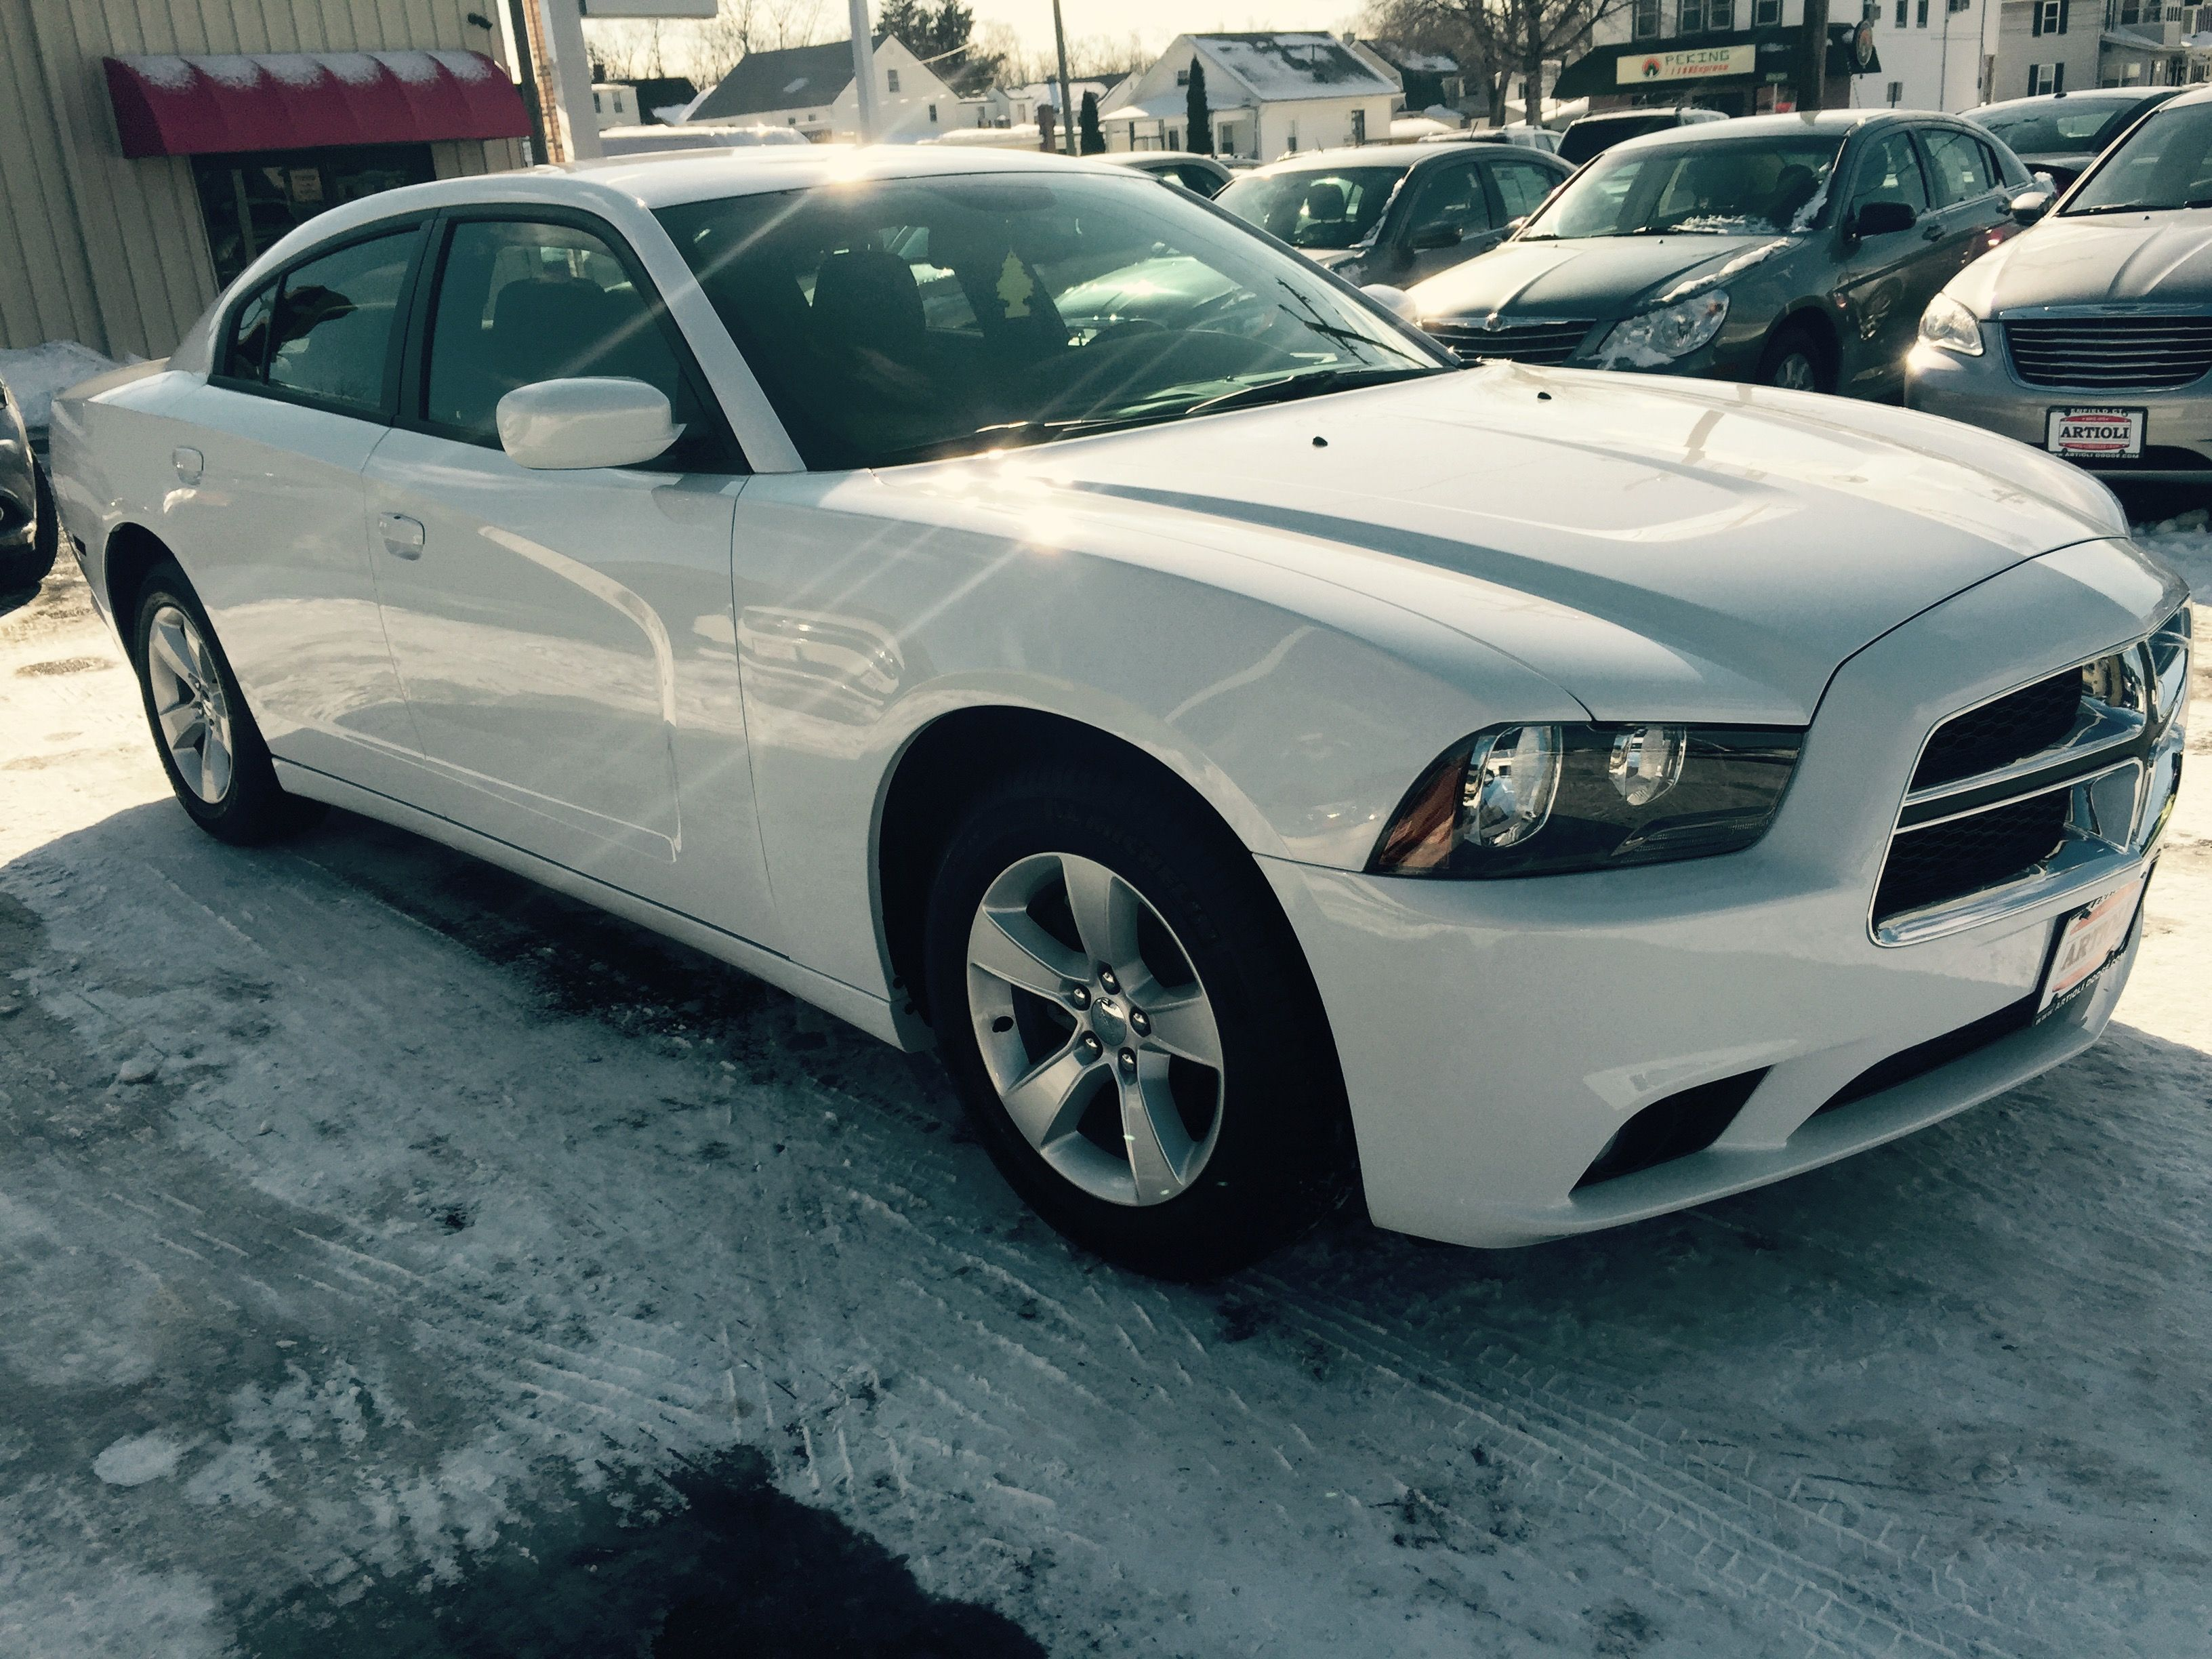 Great deal on this Dodge Charger  artiolidodge.com